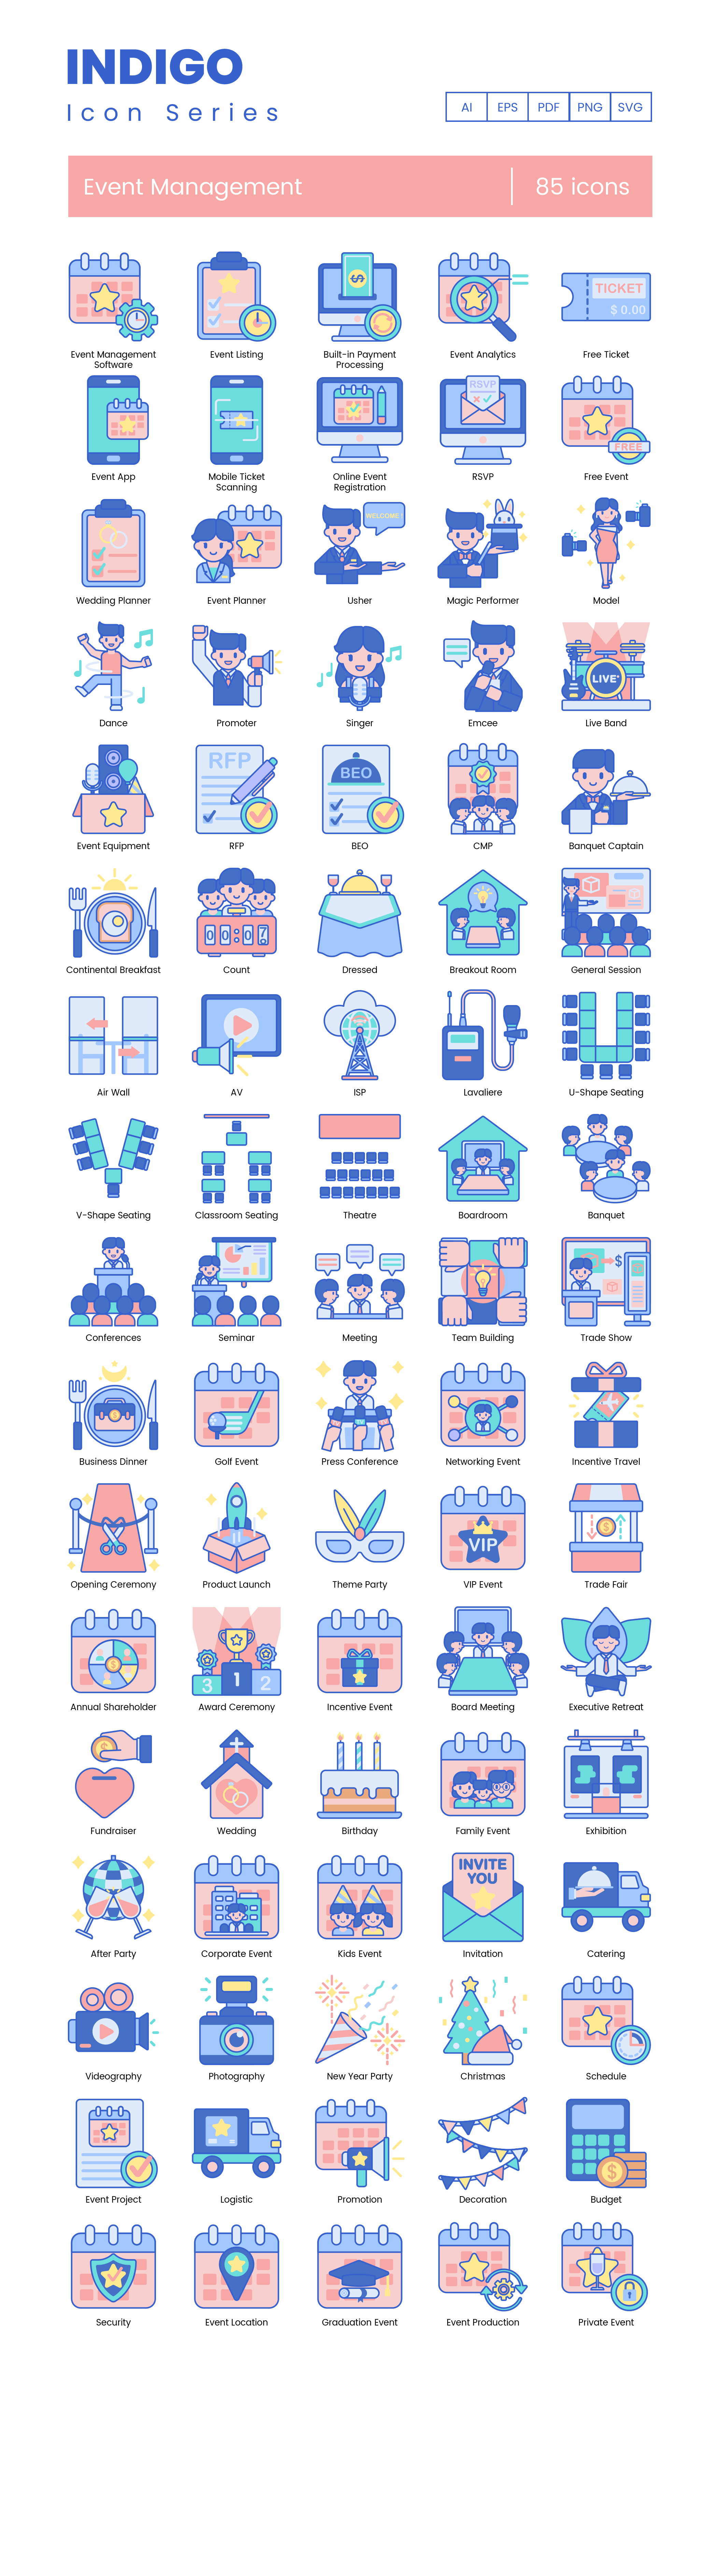 Event Management Vector Icons Preview Image